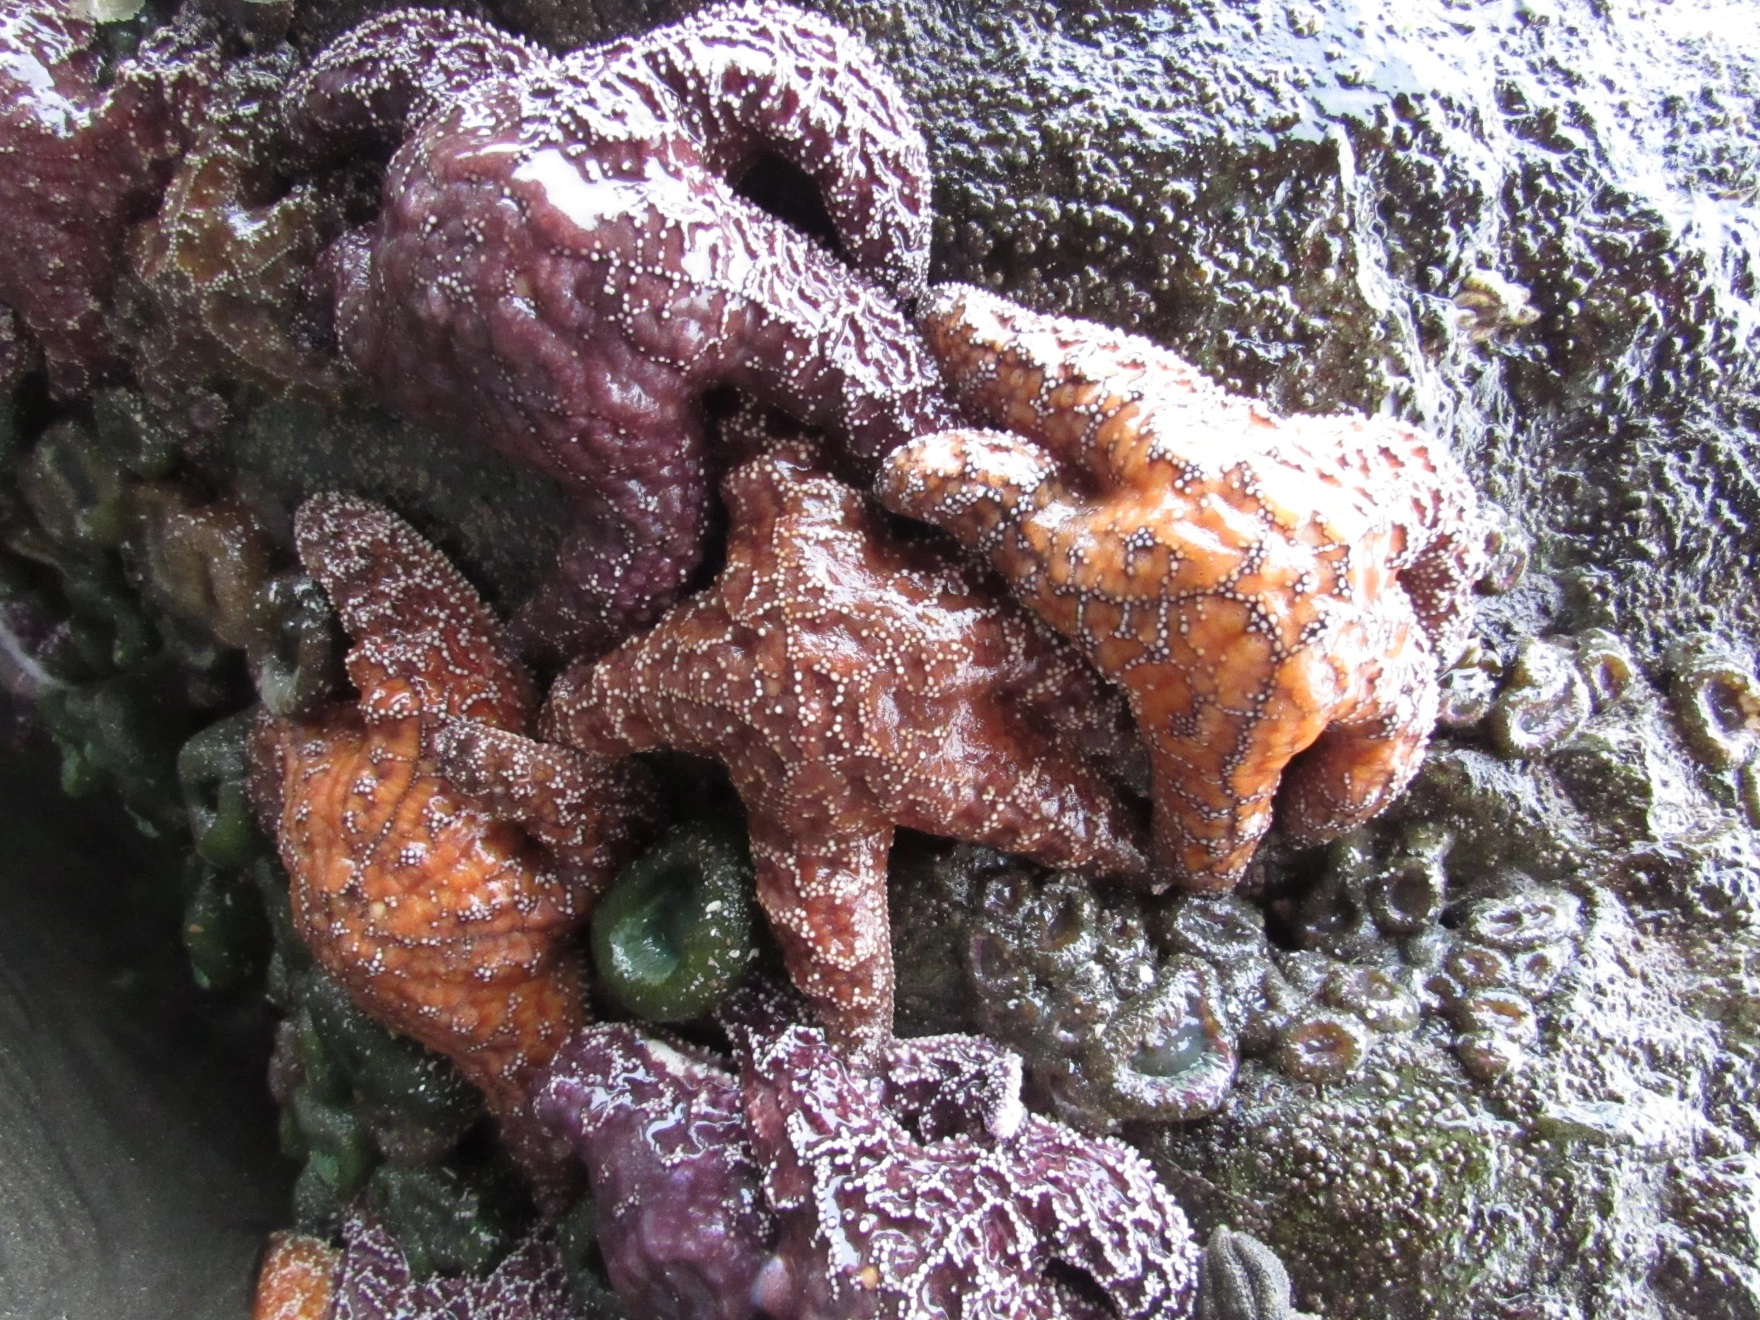 Ochre sea stars and sea anemones cling to rocks at low tide on Oregon's South Coast.